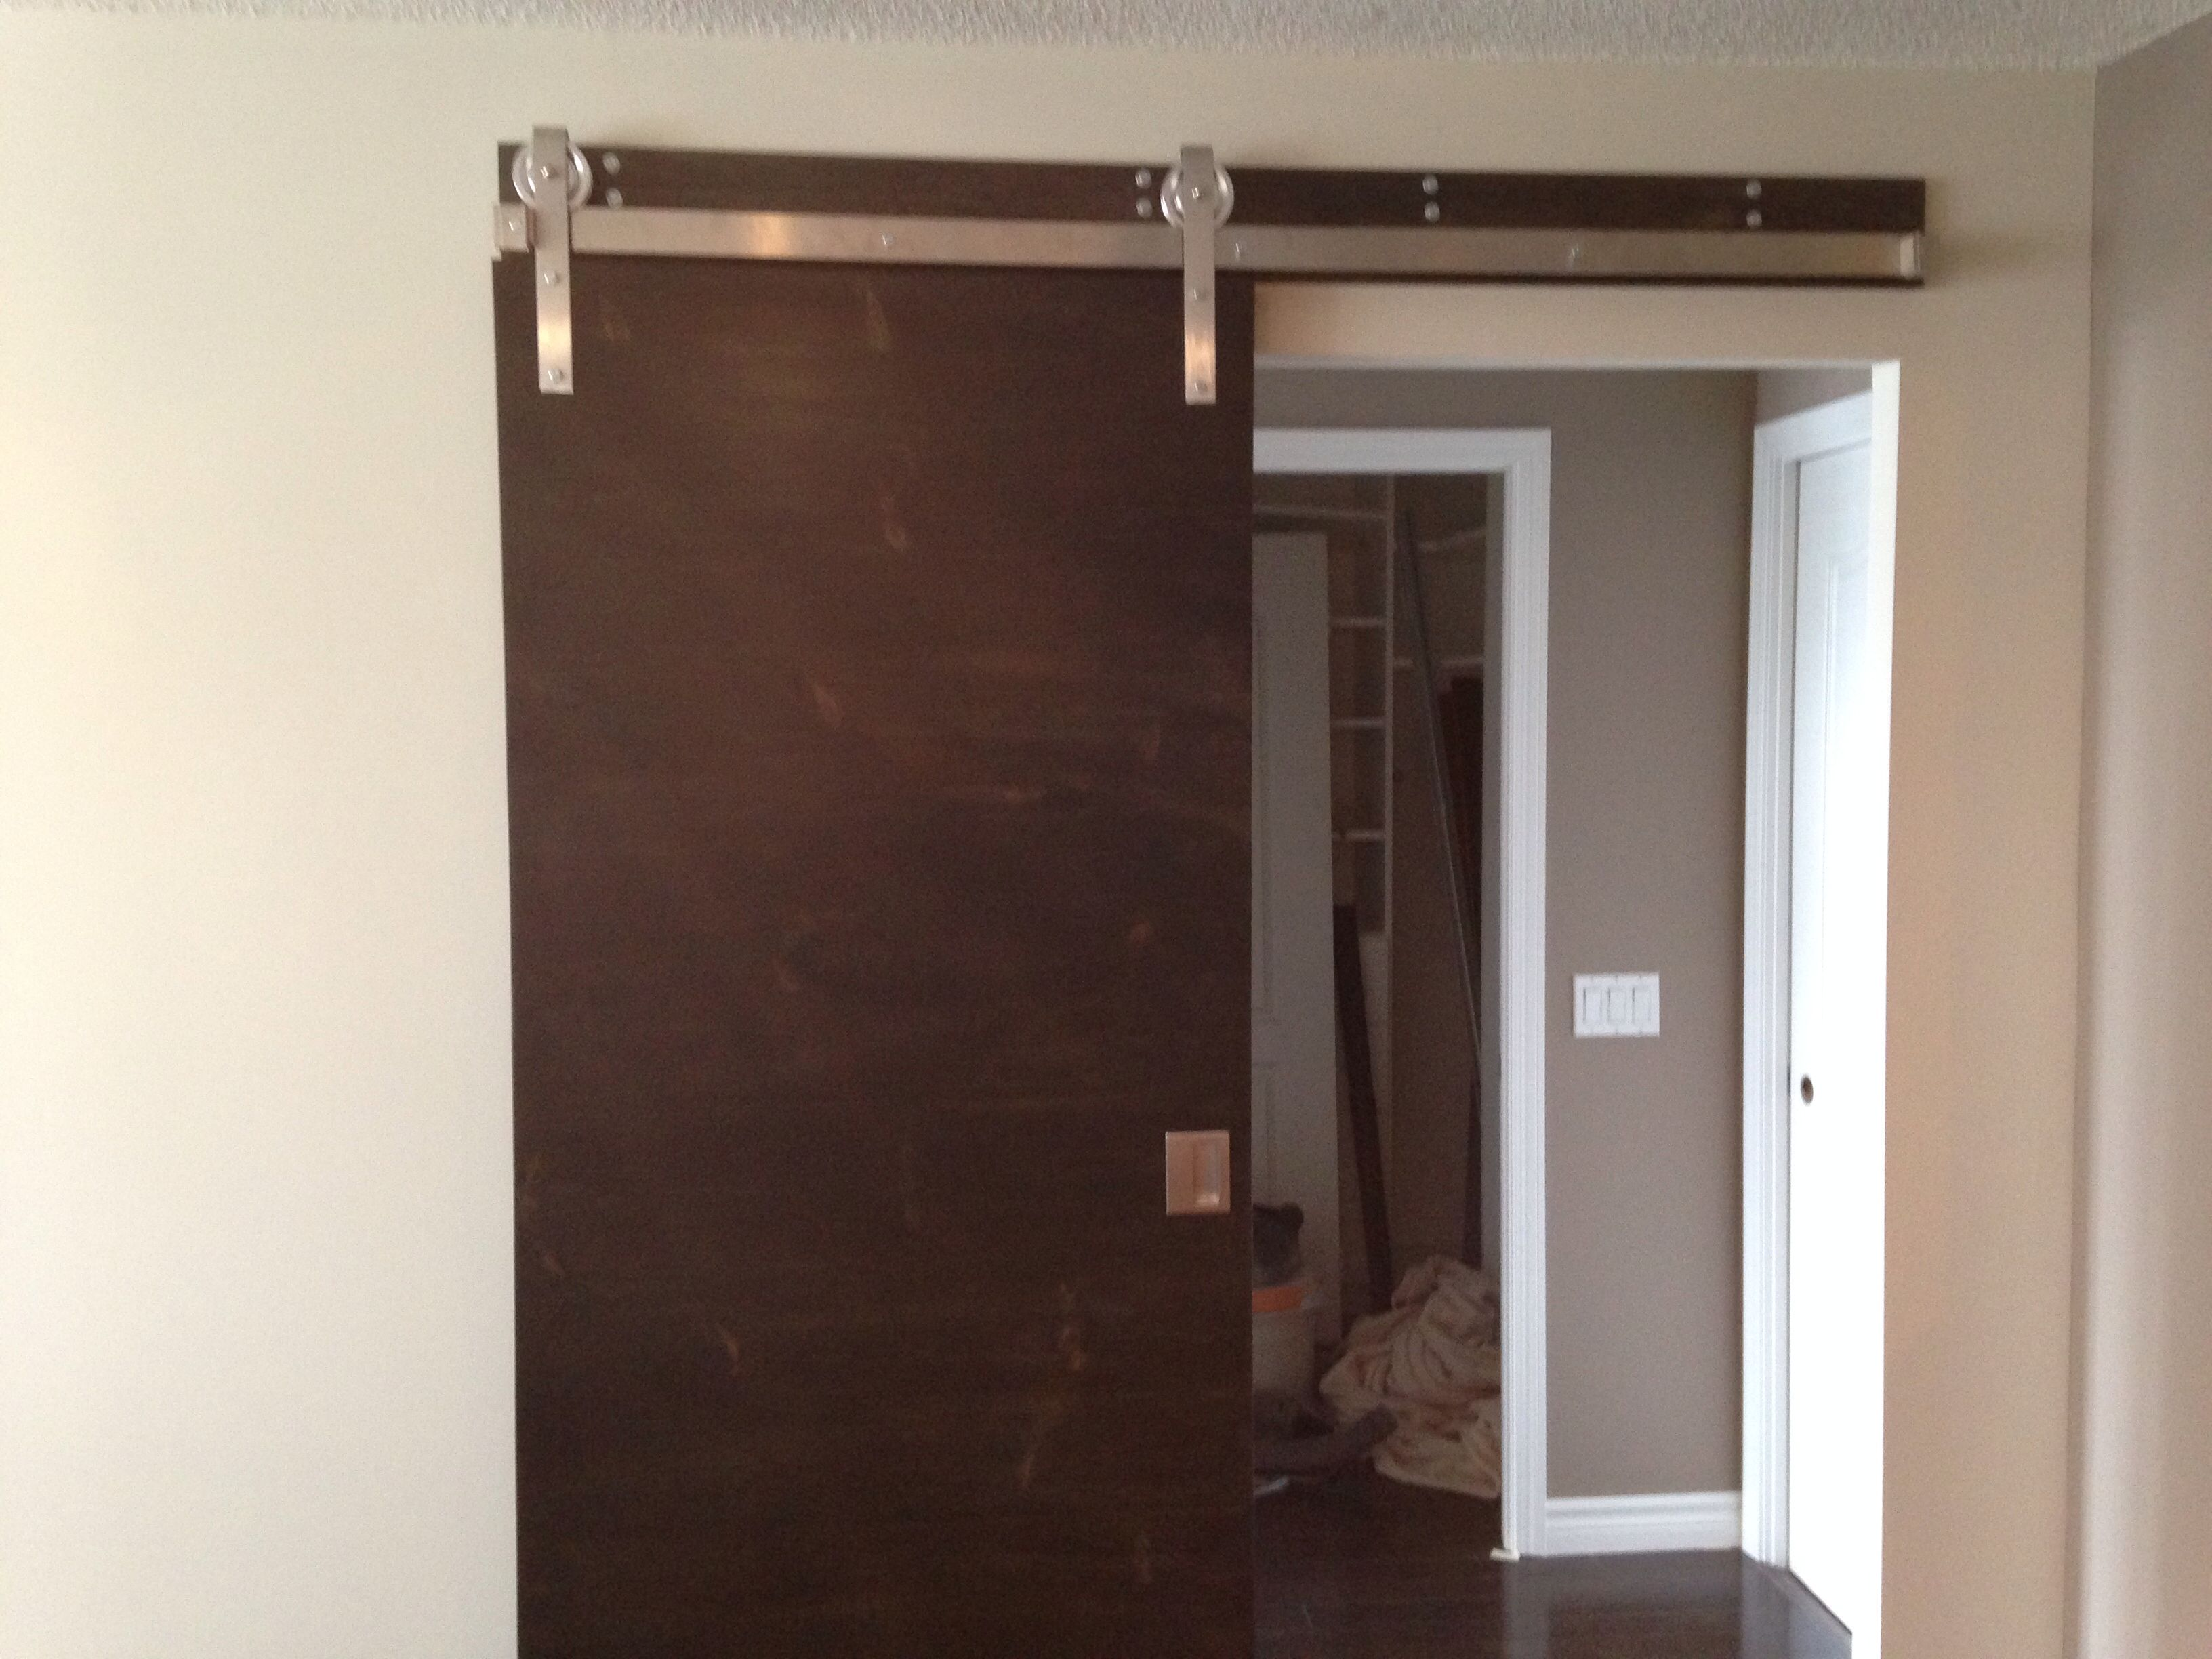 Pine slab door stained ebony on stainless steel barn door hardware & Pine slab door stained ebony on stainless steel barn door hardware ... Pezcame.Com